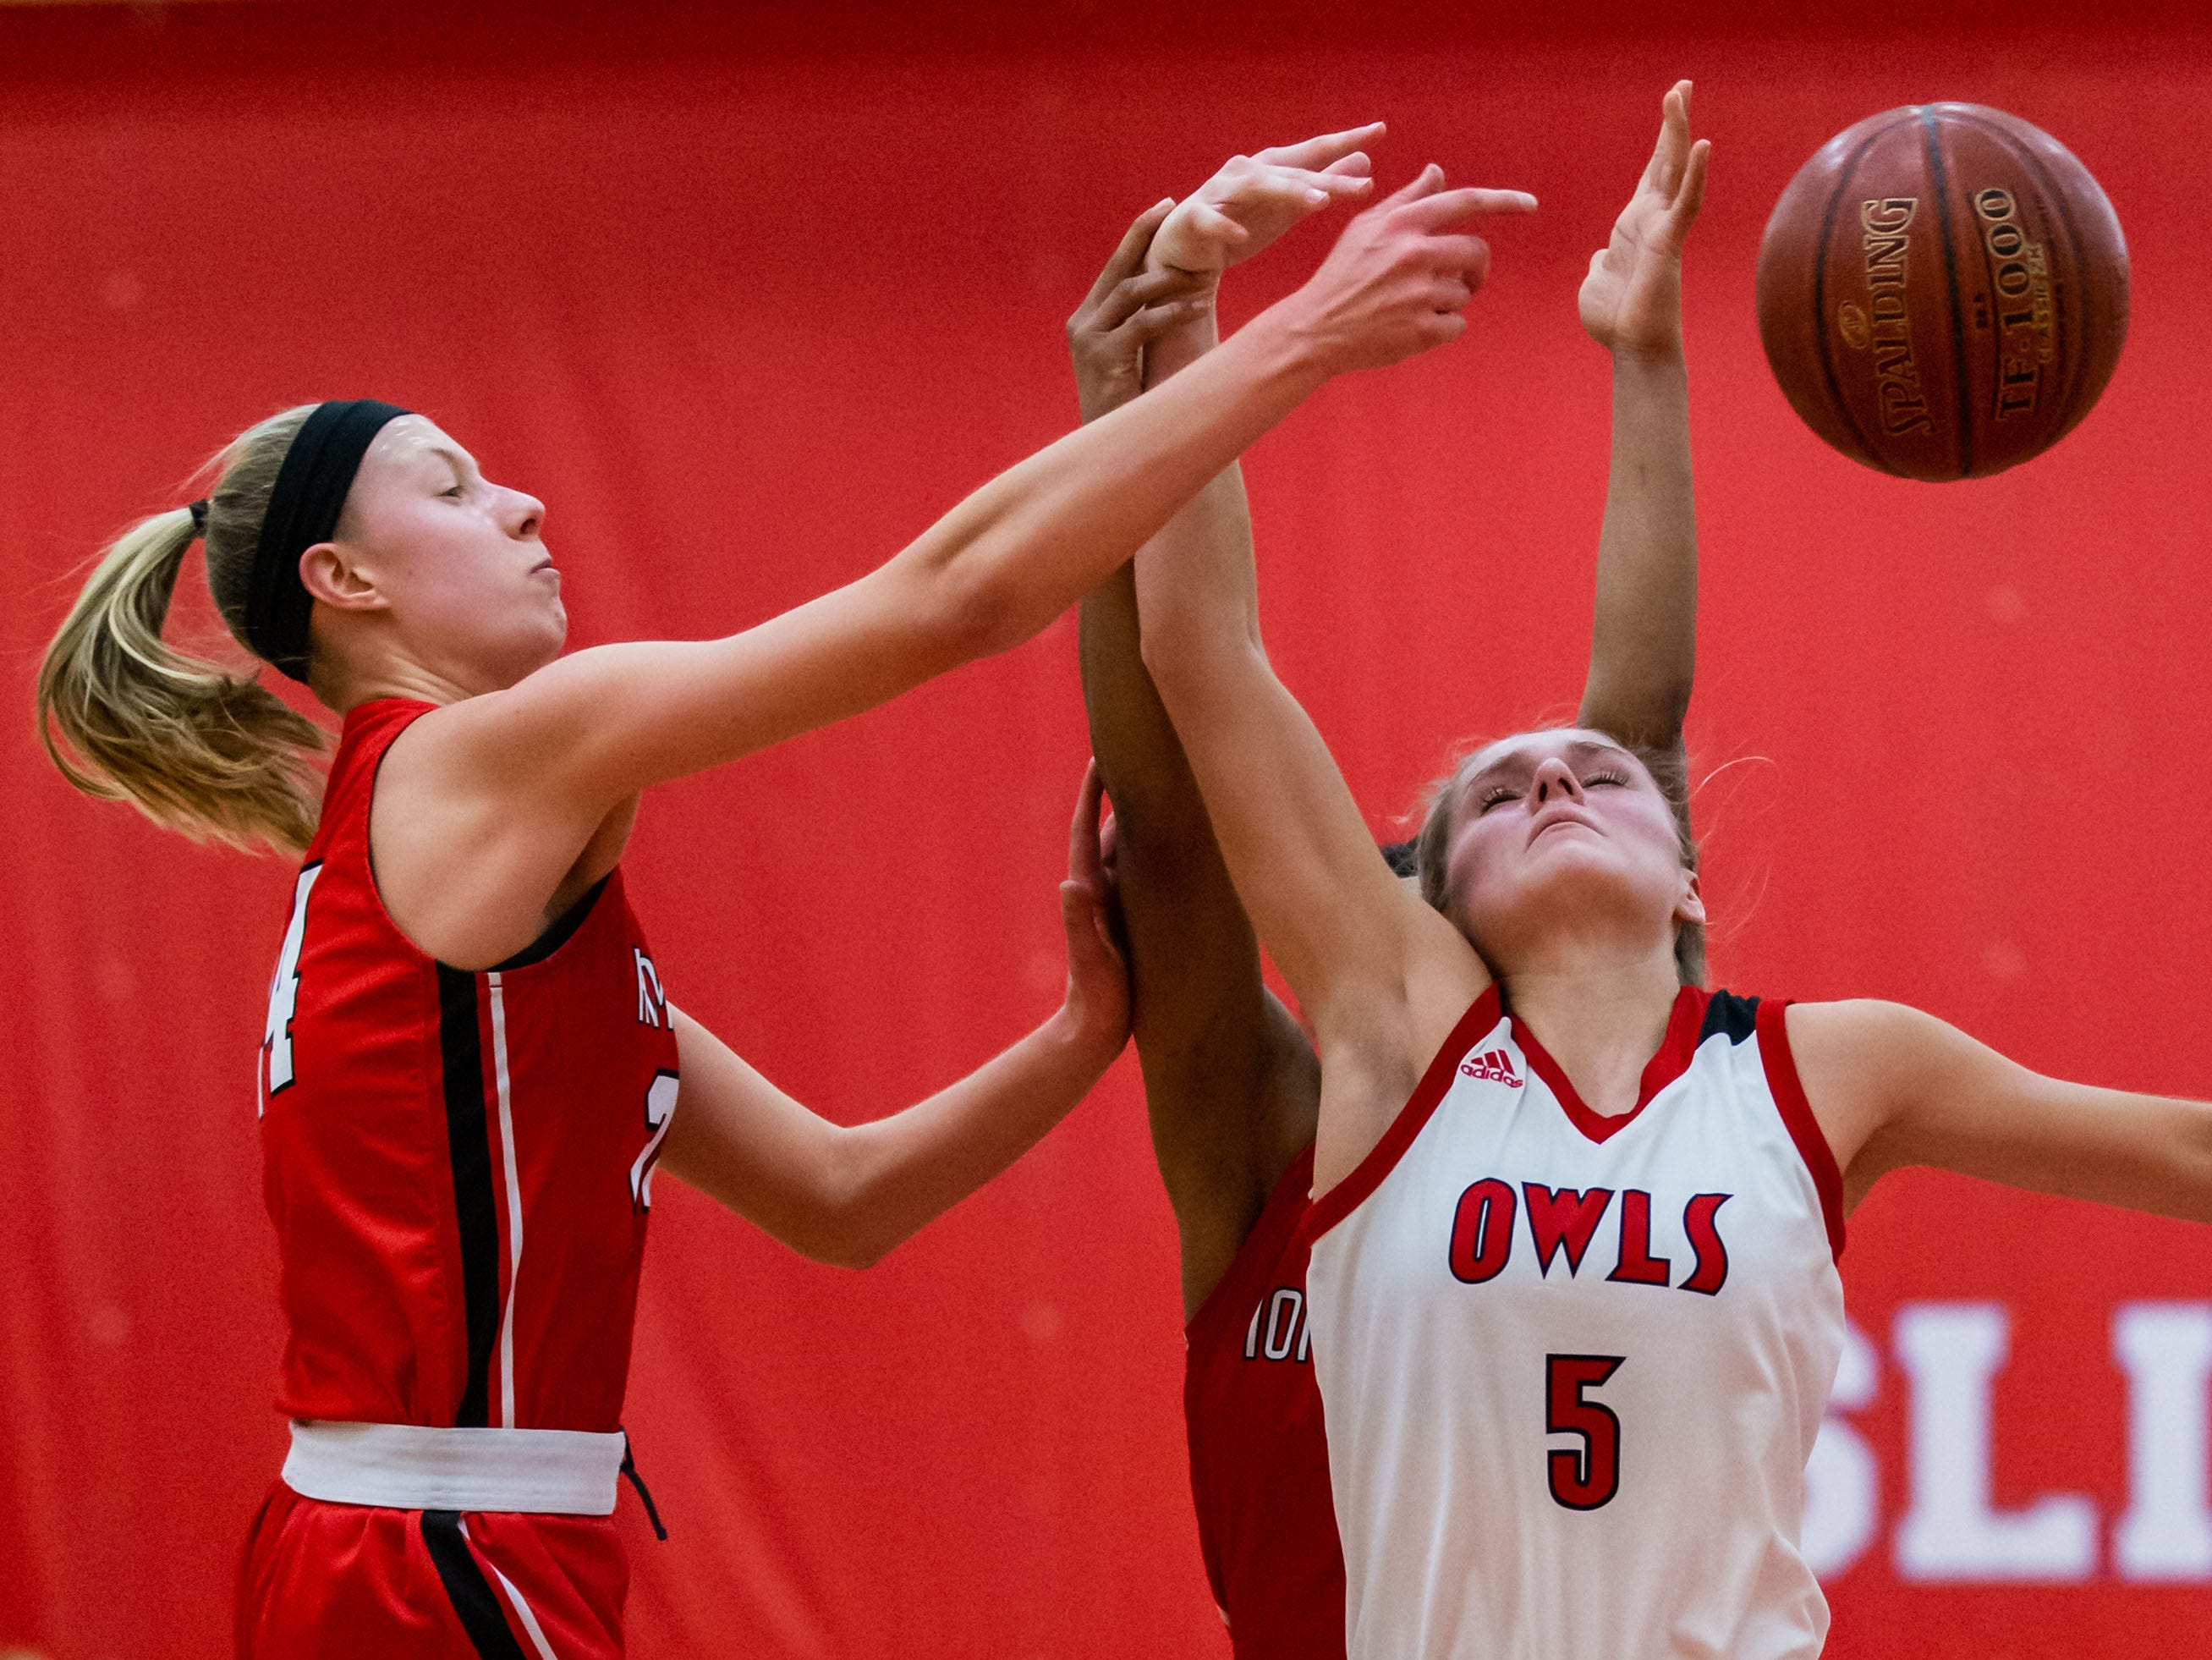 Homestead's Ally Rilling (left) battles for a rebound with Slinger's Sydney Reinhardt (5) and teammate Daja Young (obscured) during the game at Slinger on Friday, Jan. 11, 2019.